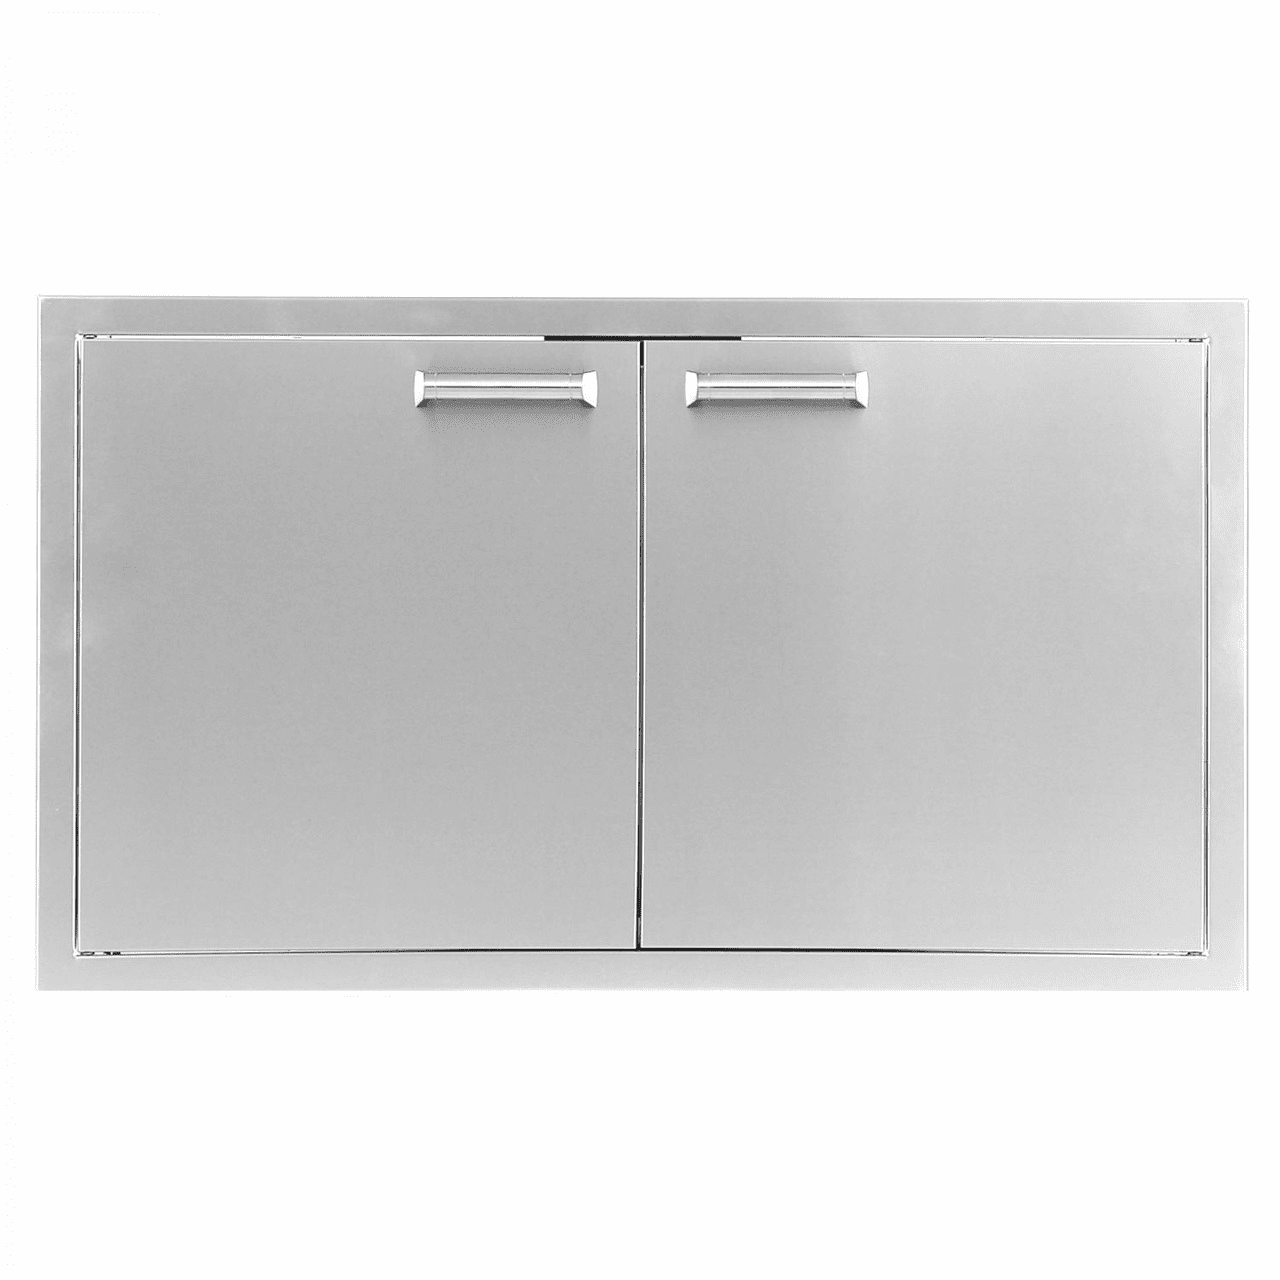 """PCM 301H 42"""" Double Access Door Stainless Steel"""